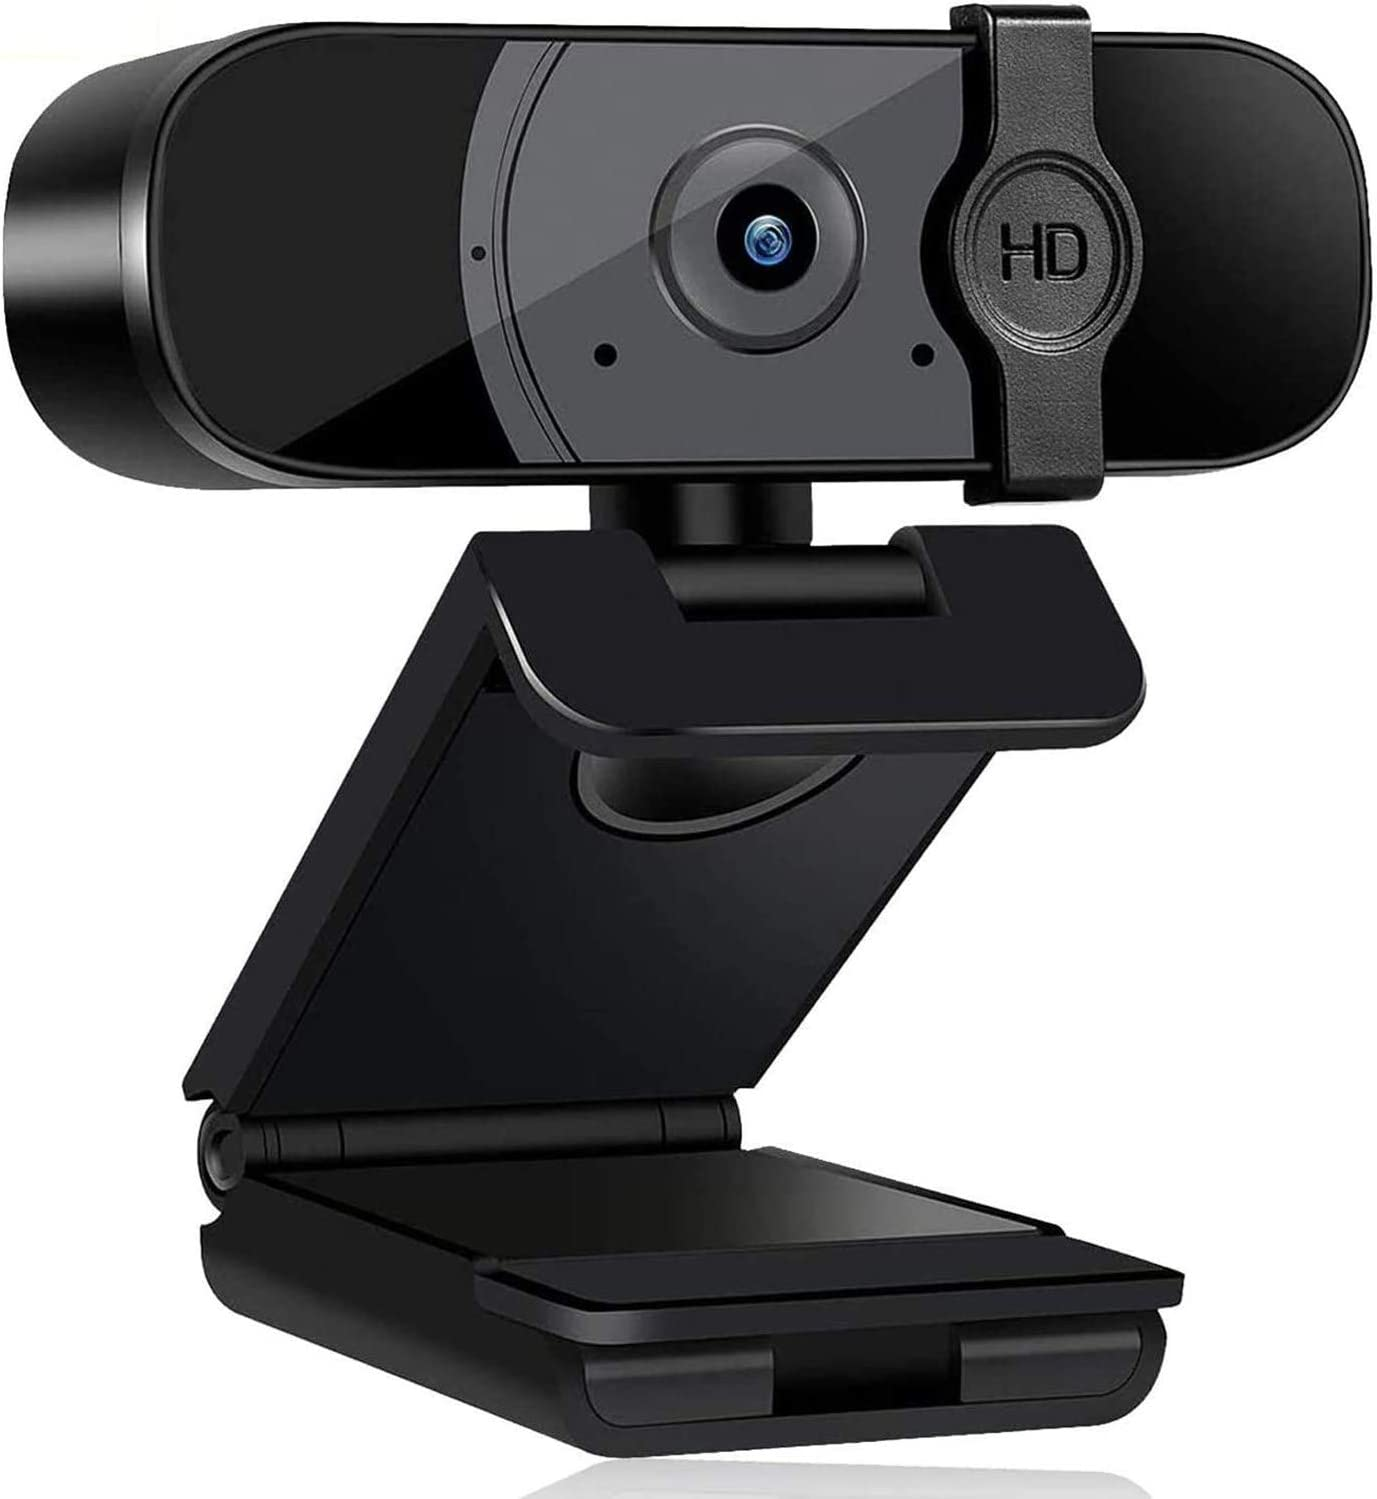 2K Webcam with Microphone for Desktop,Computer Streaming Web Camera USB Webcam with Privacy Cover Auto Light Correction Desktop Laptop Webcam for Video Conferencing, Teaching, Streaming